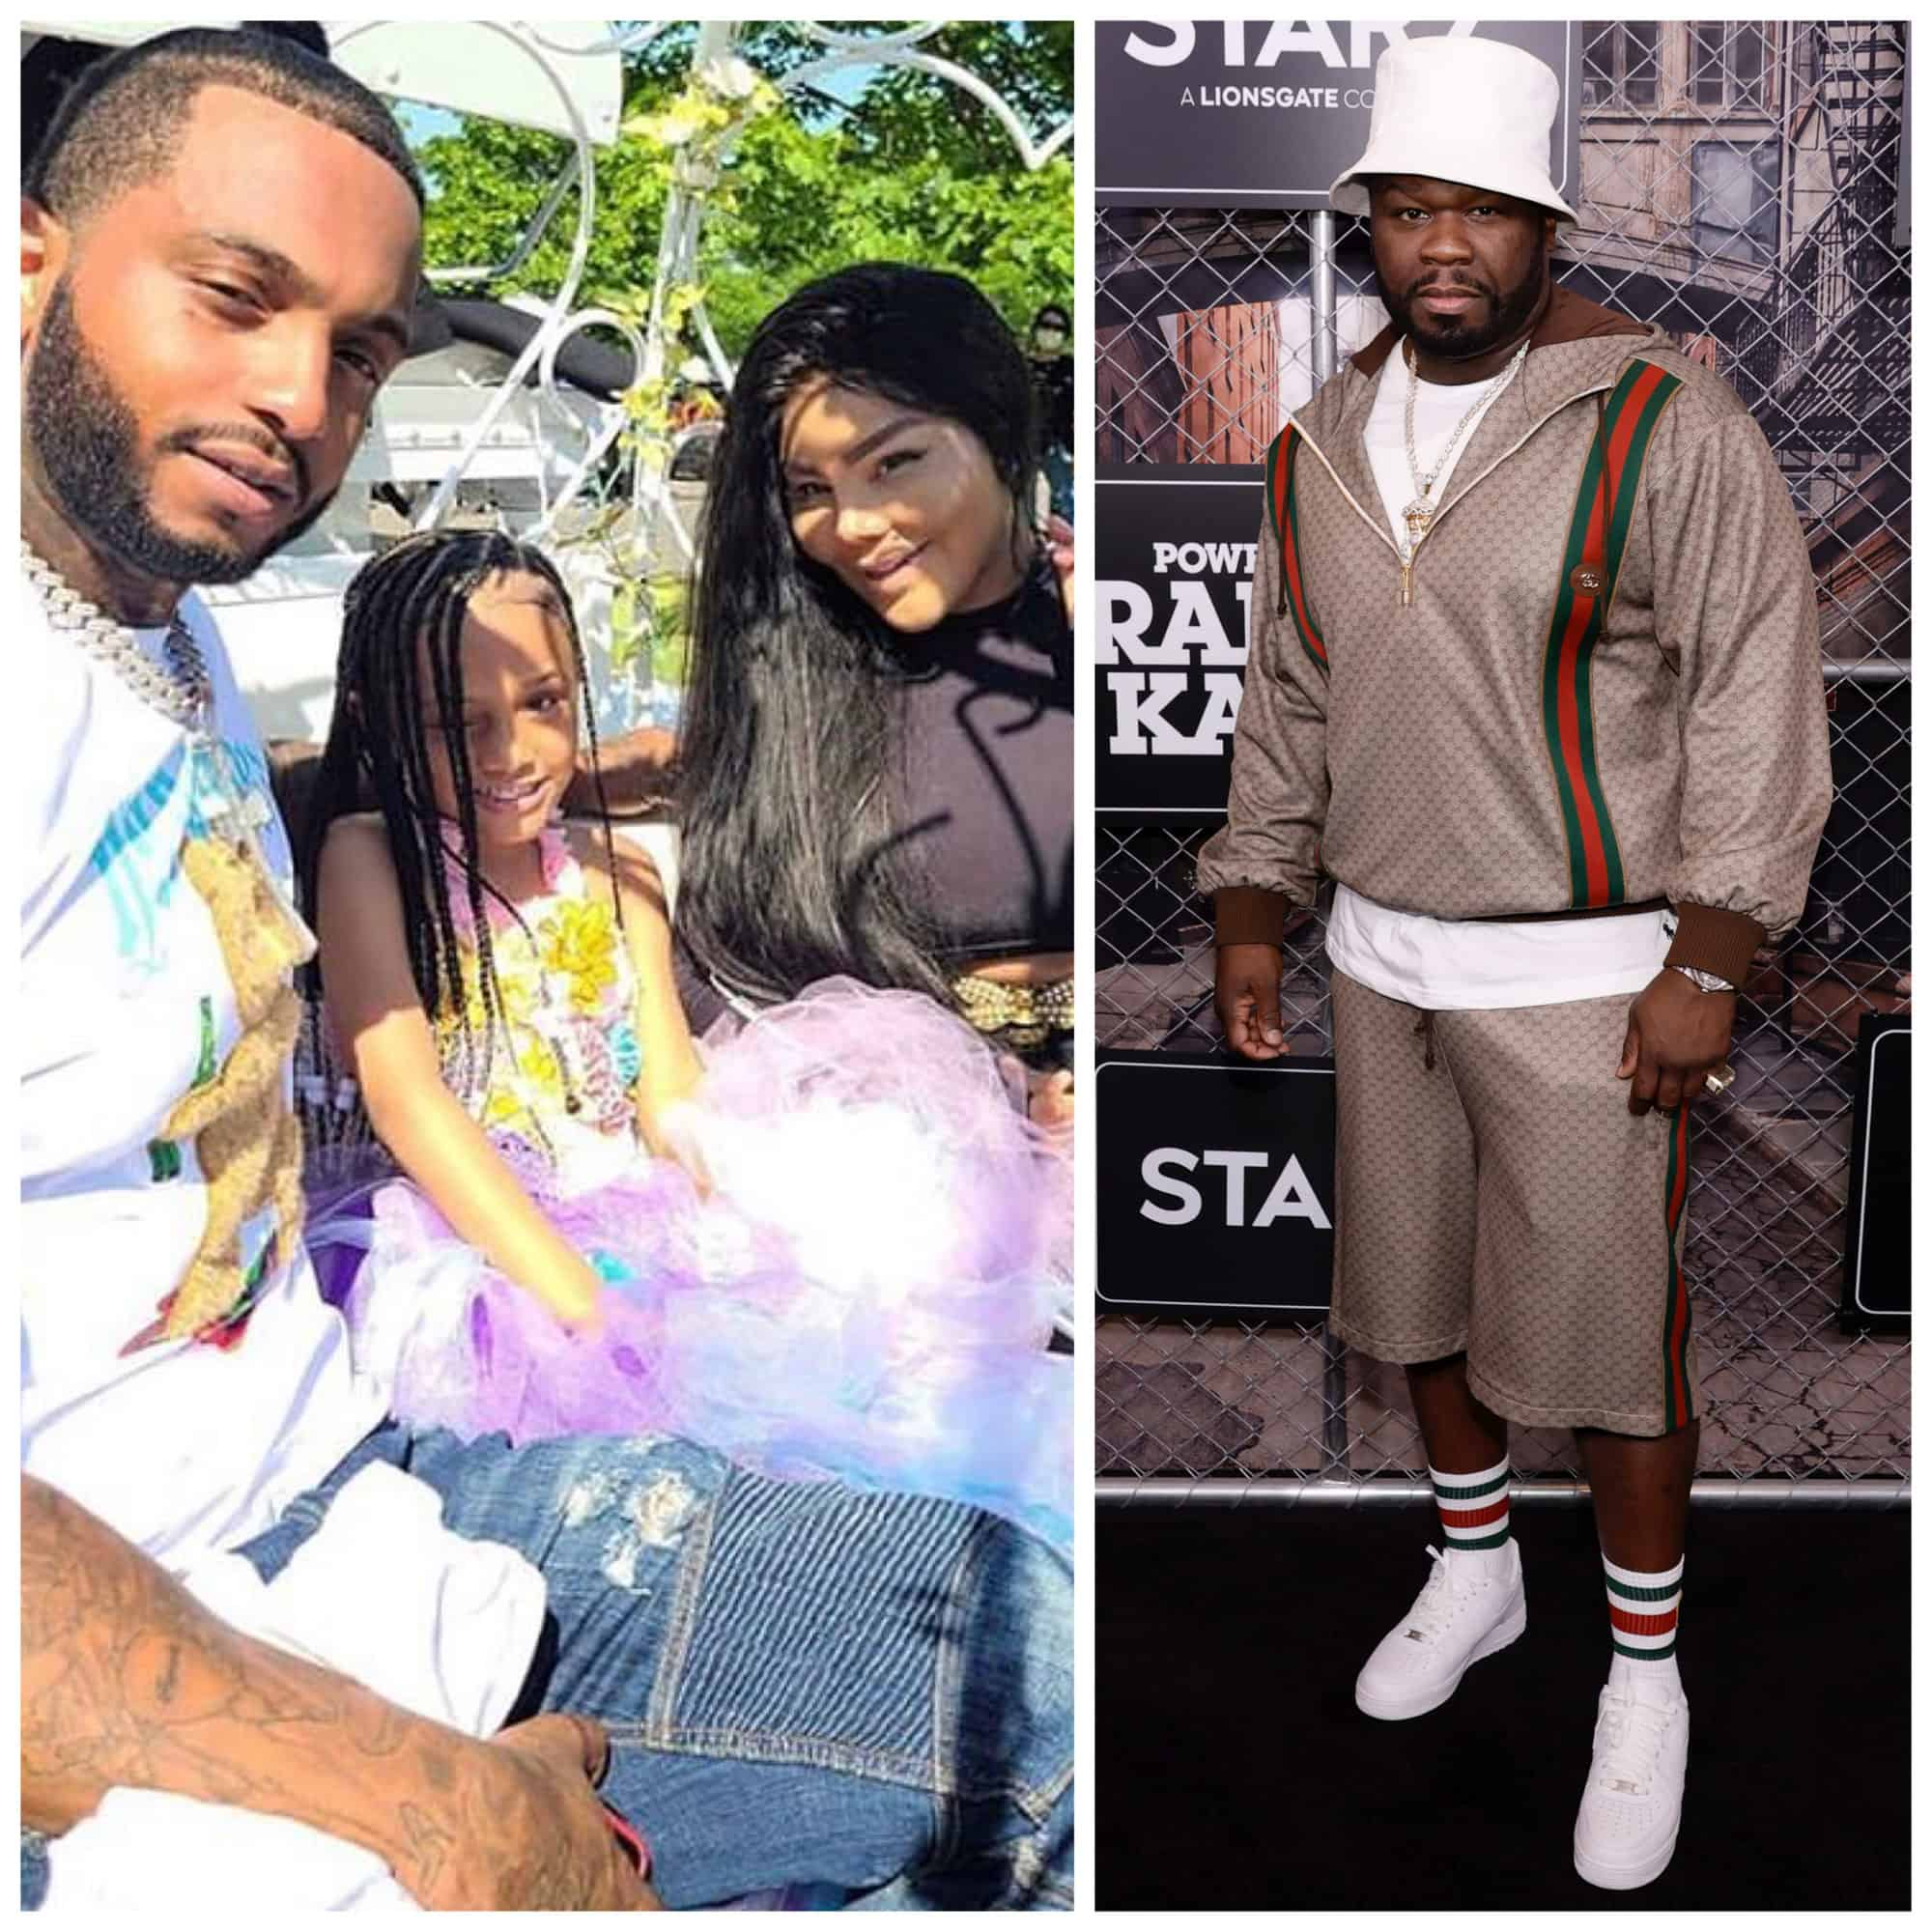 50 Cent-Lil' Kim's man Mr. Papers defends her from 50 Cent.